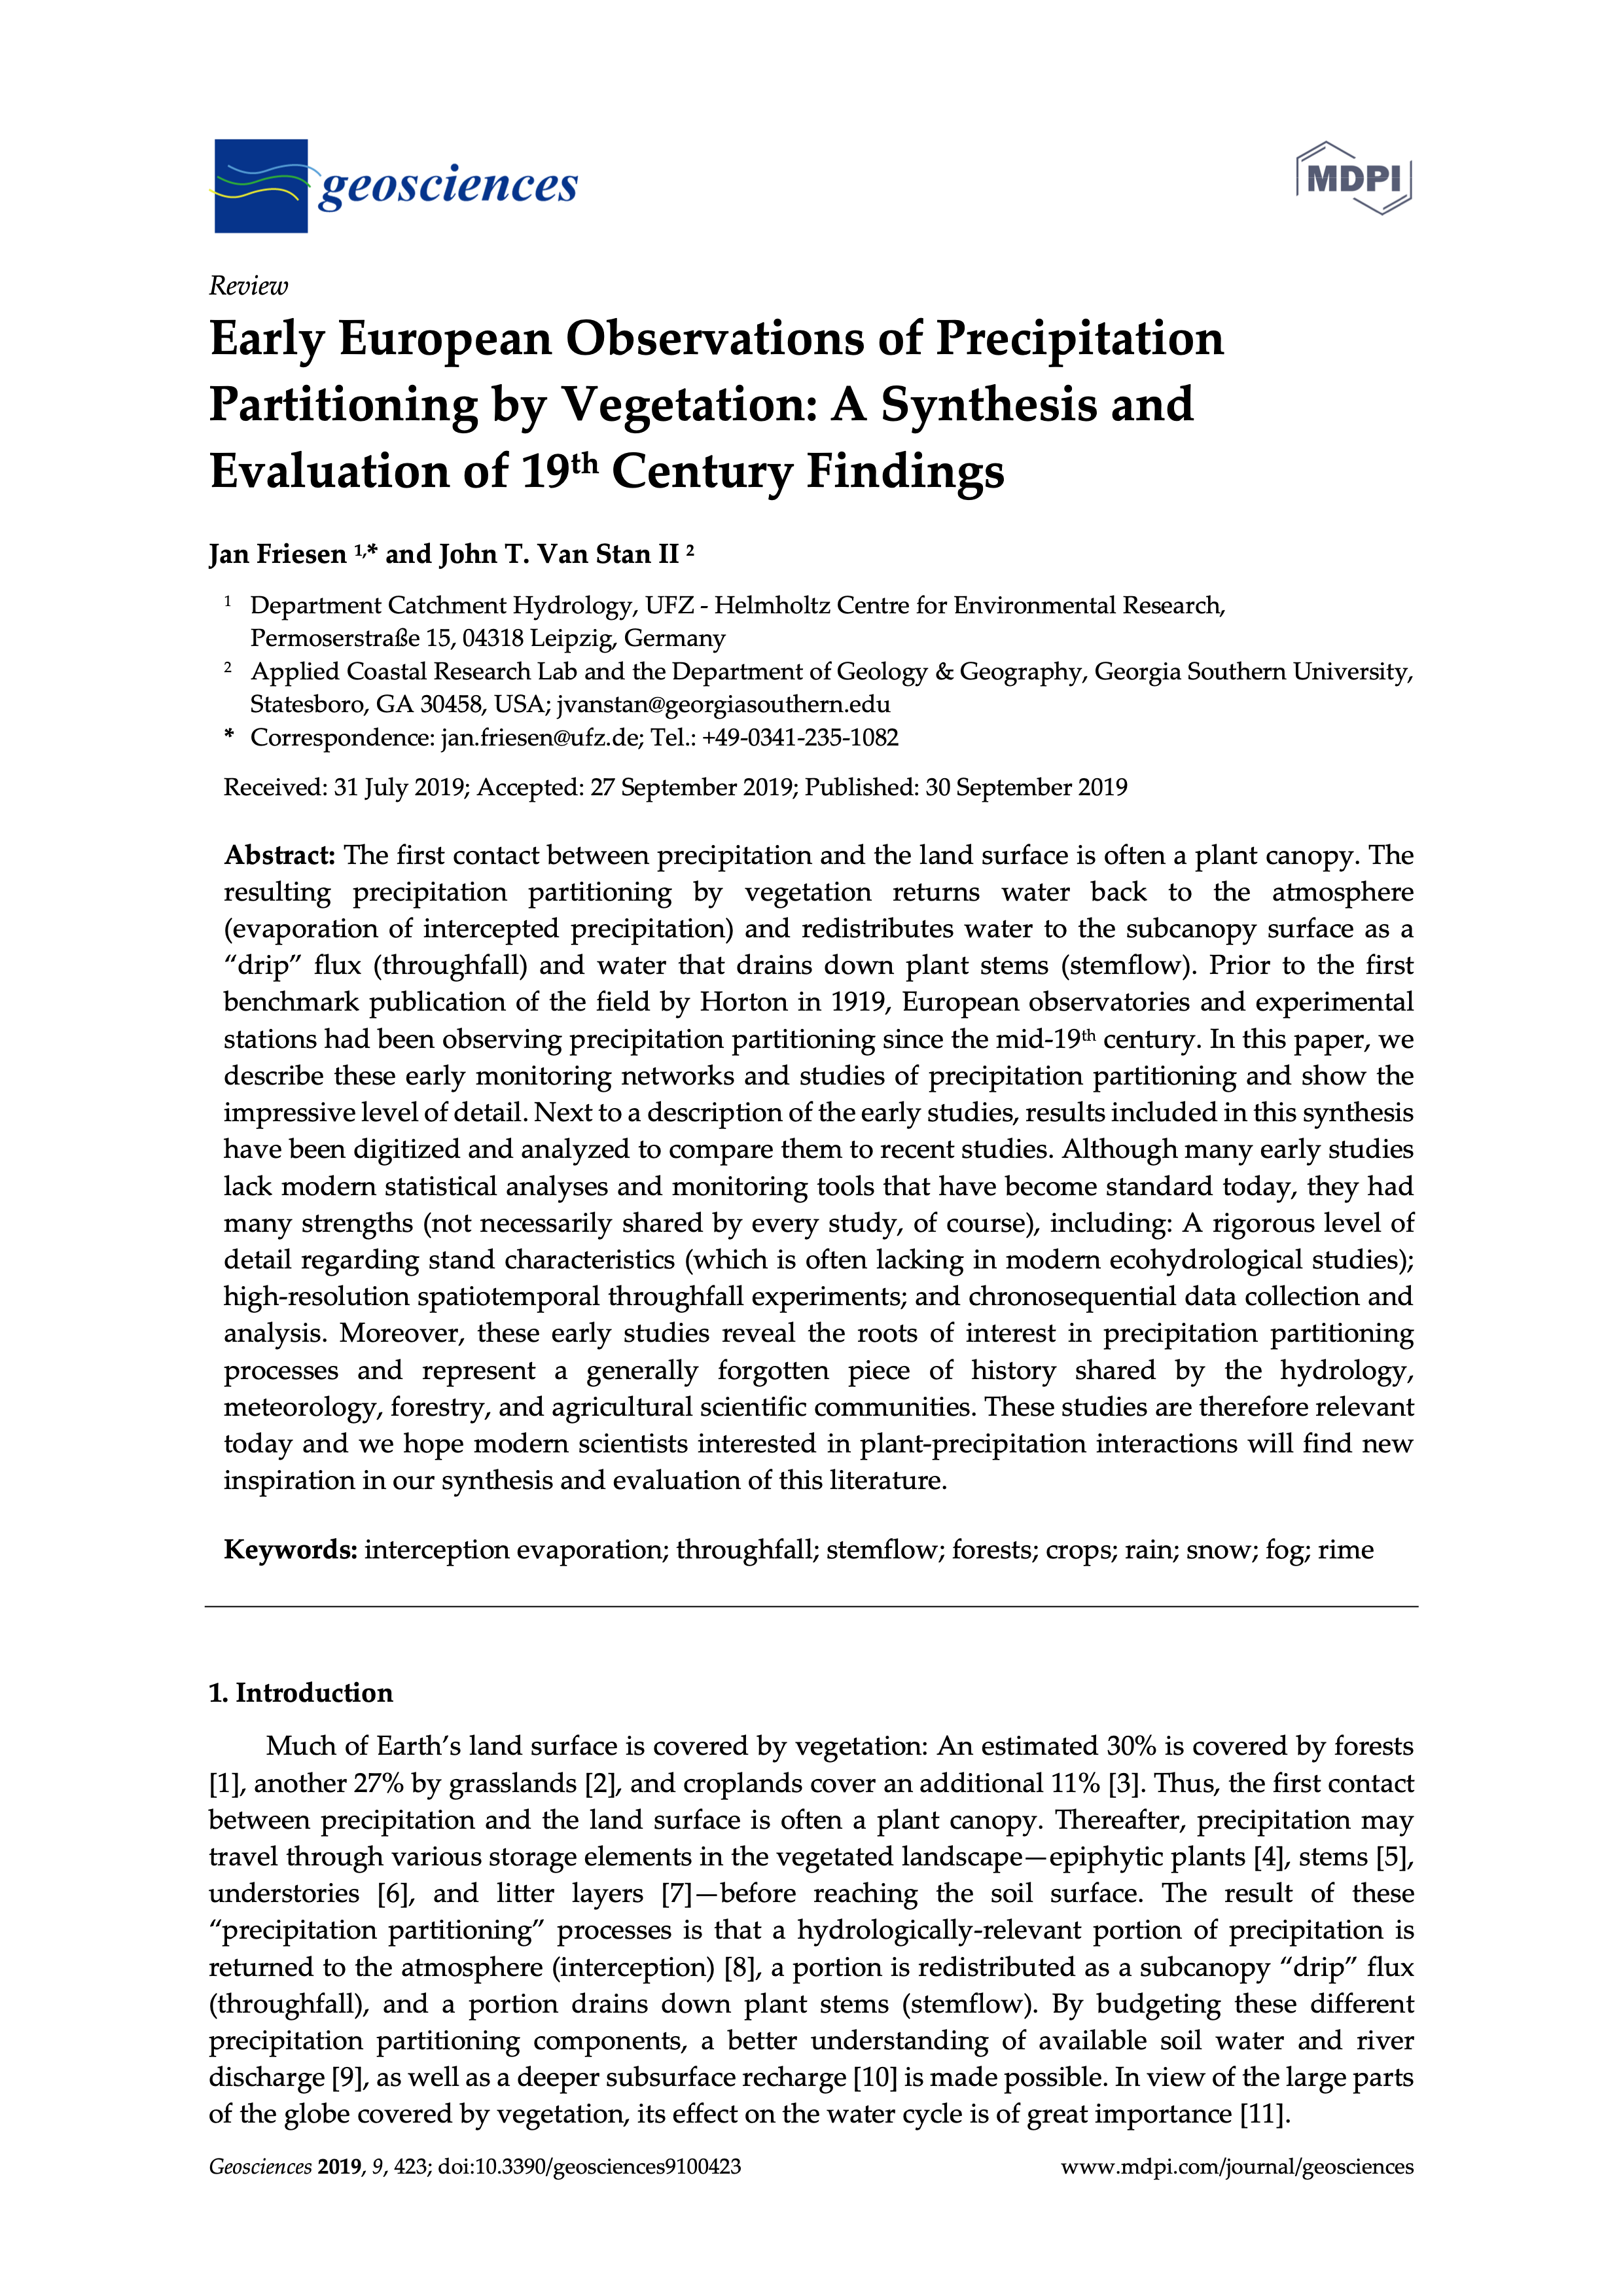 Friesen_Van Stan_2019 Early European Observations of Precipitation Partitioning by Vegetation